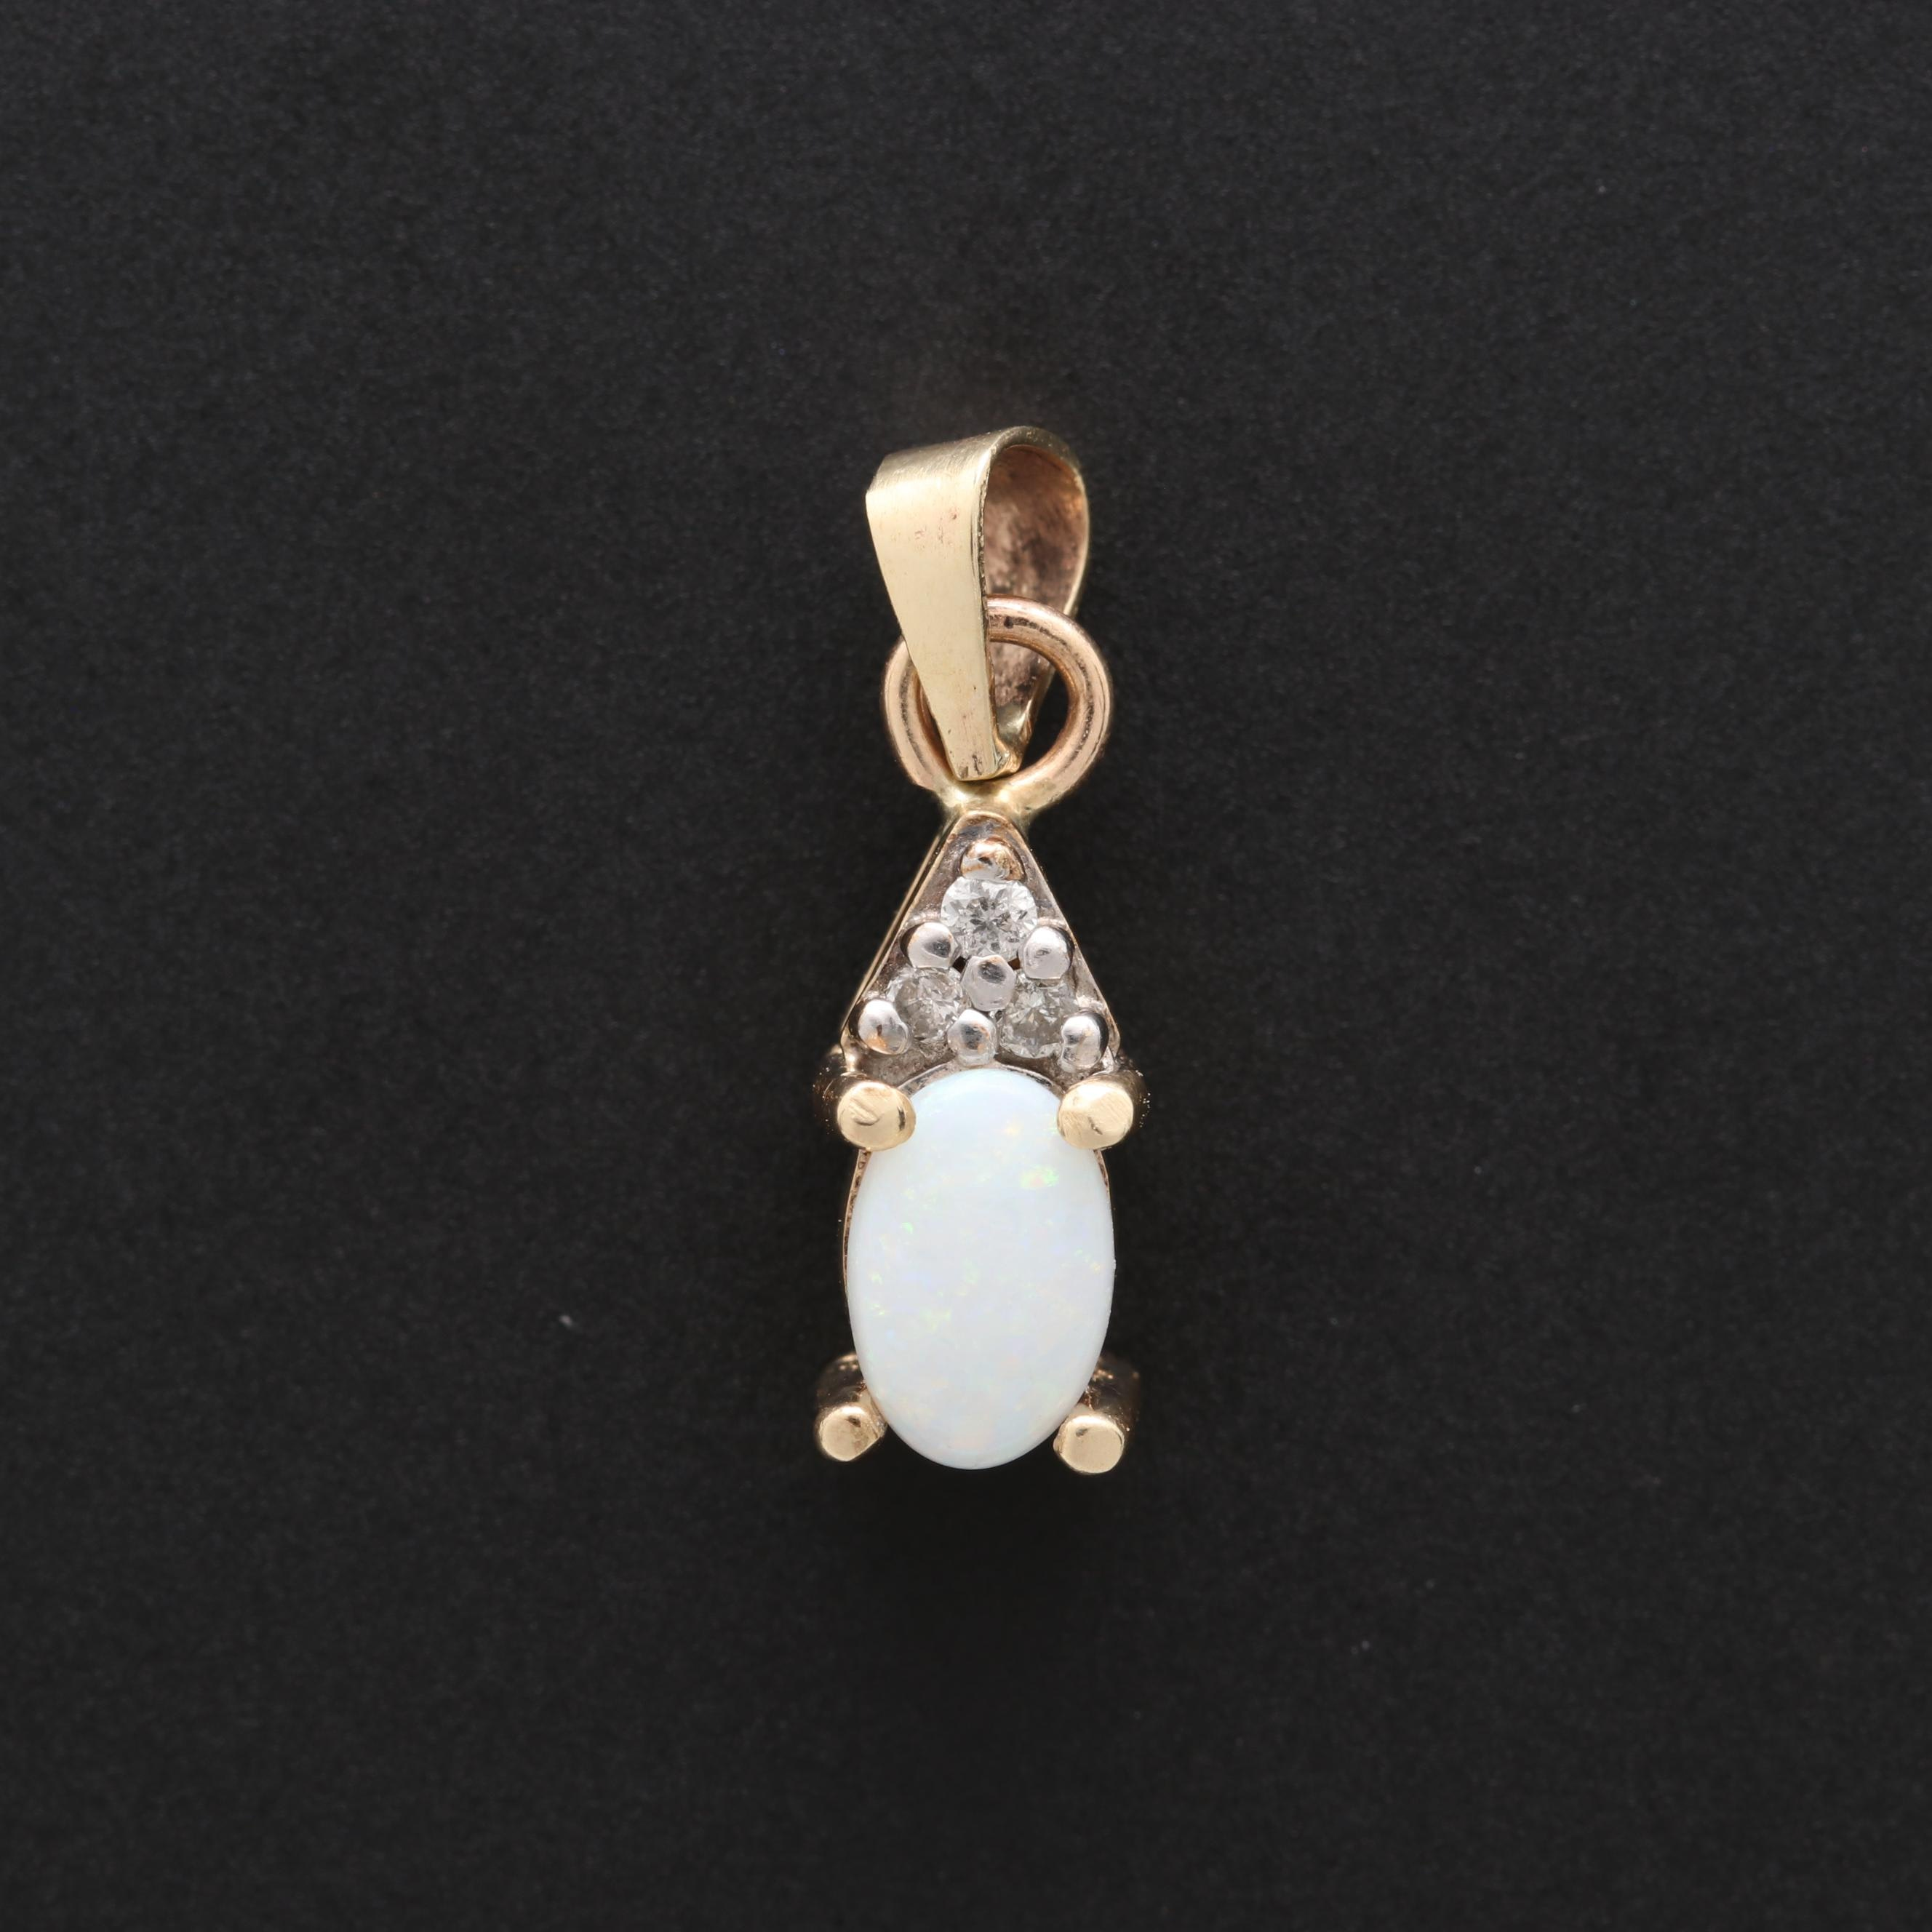 10K Yellow Gold Opal and Diamond Pendant With 14K Yellow Gold Bail